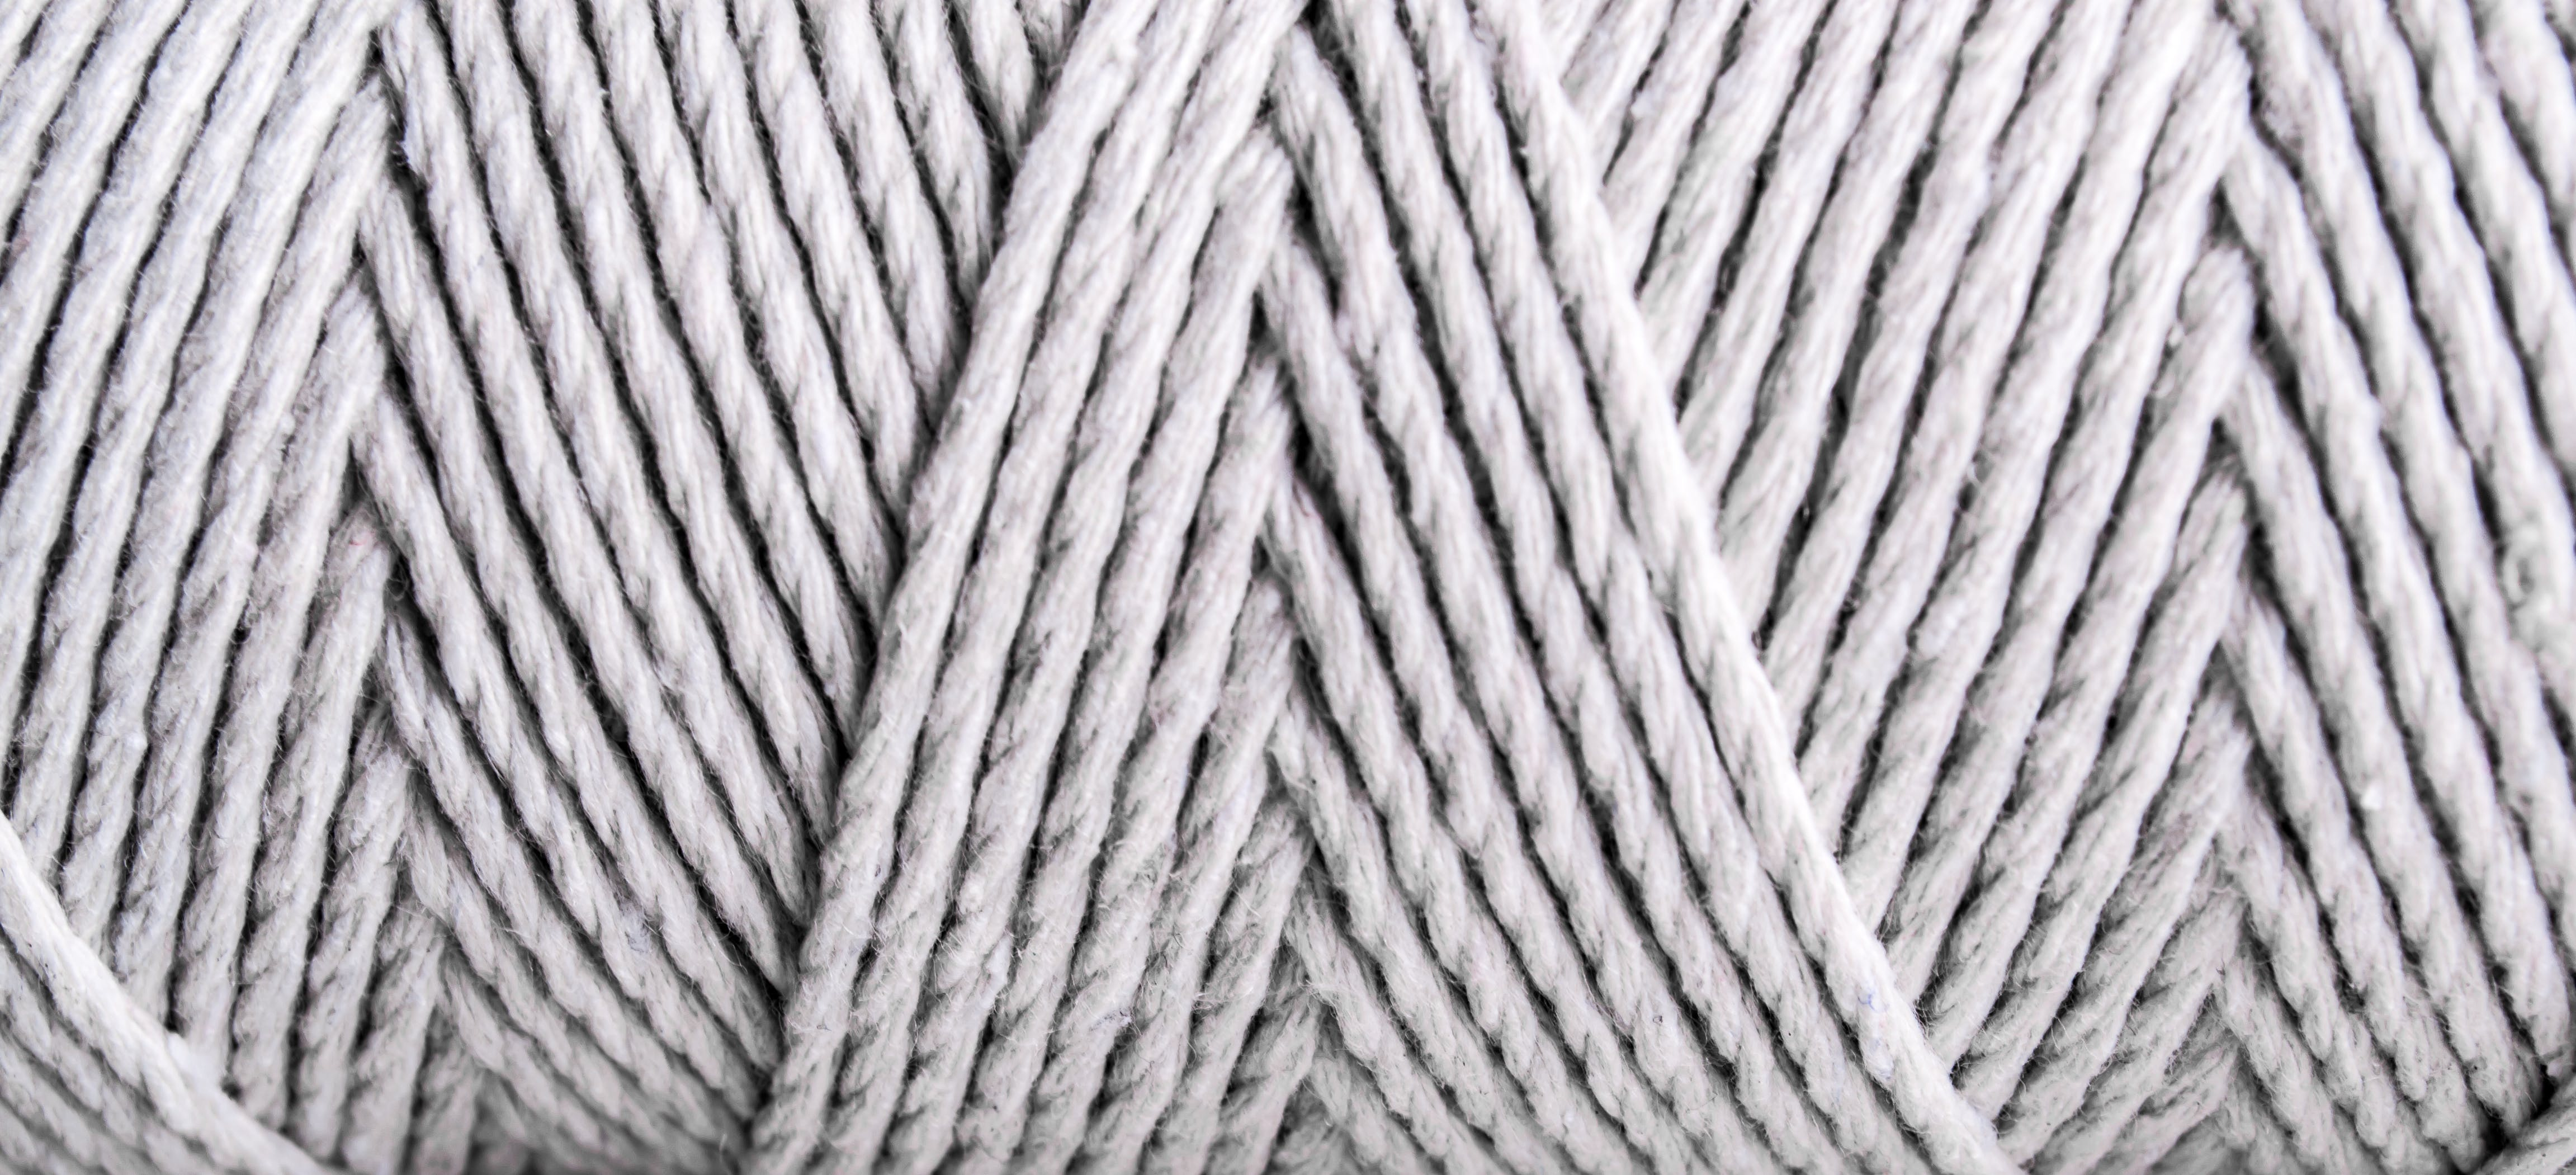 Closed-up Image of Gray Textile